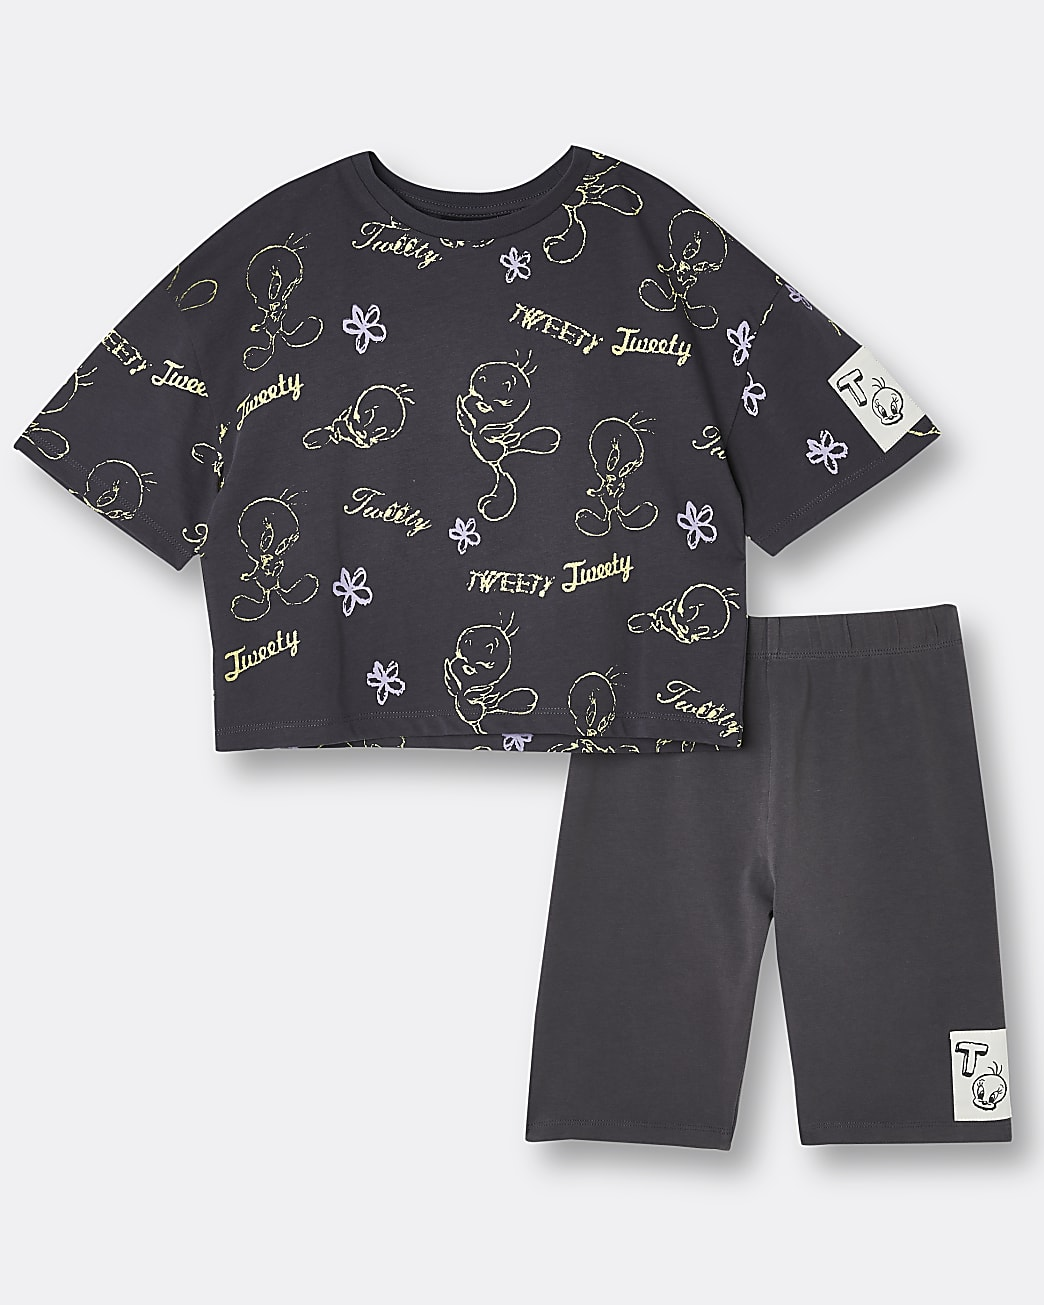 Girls black Tweety t-shirt and shorts outfit